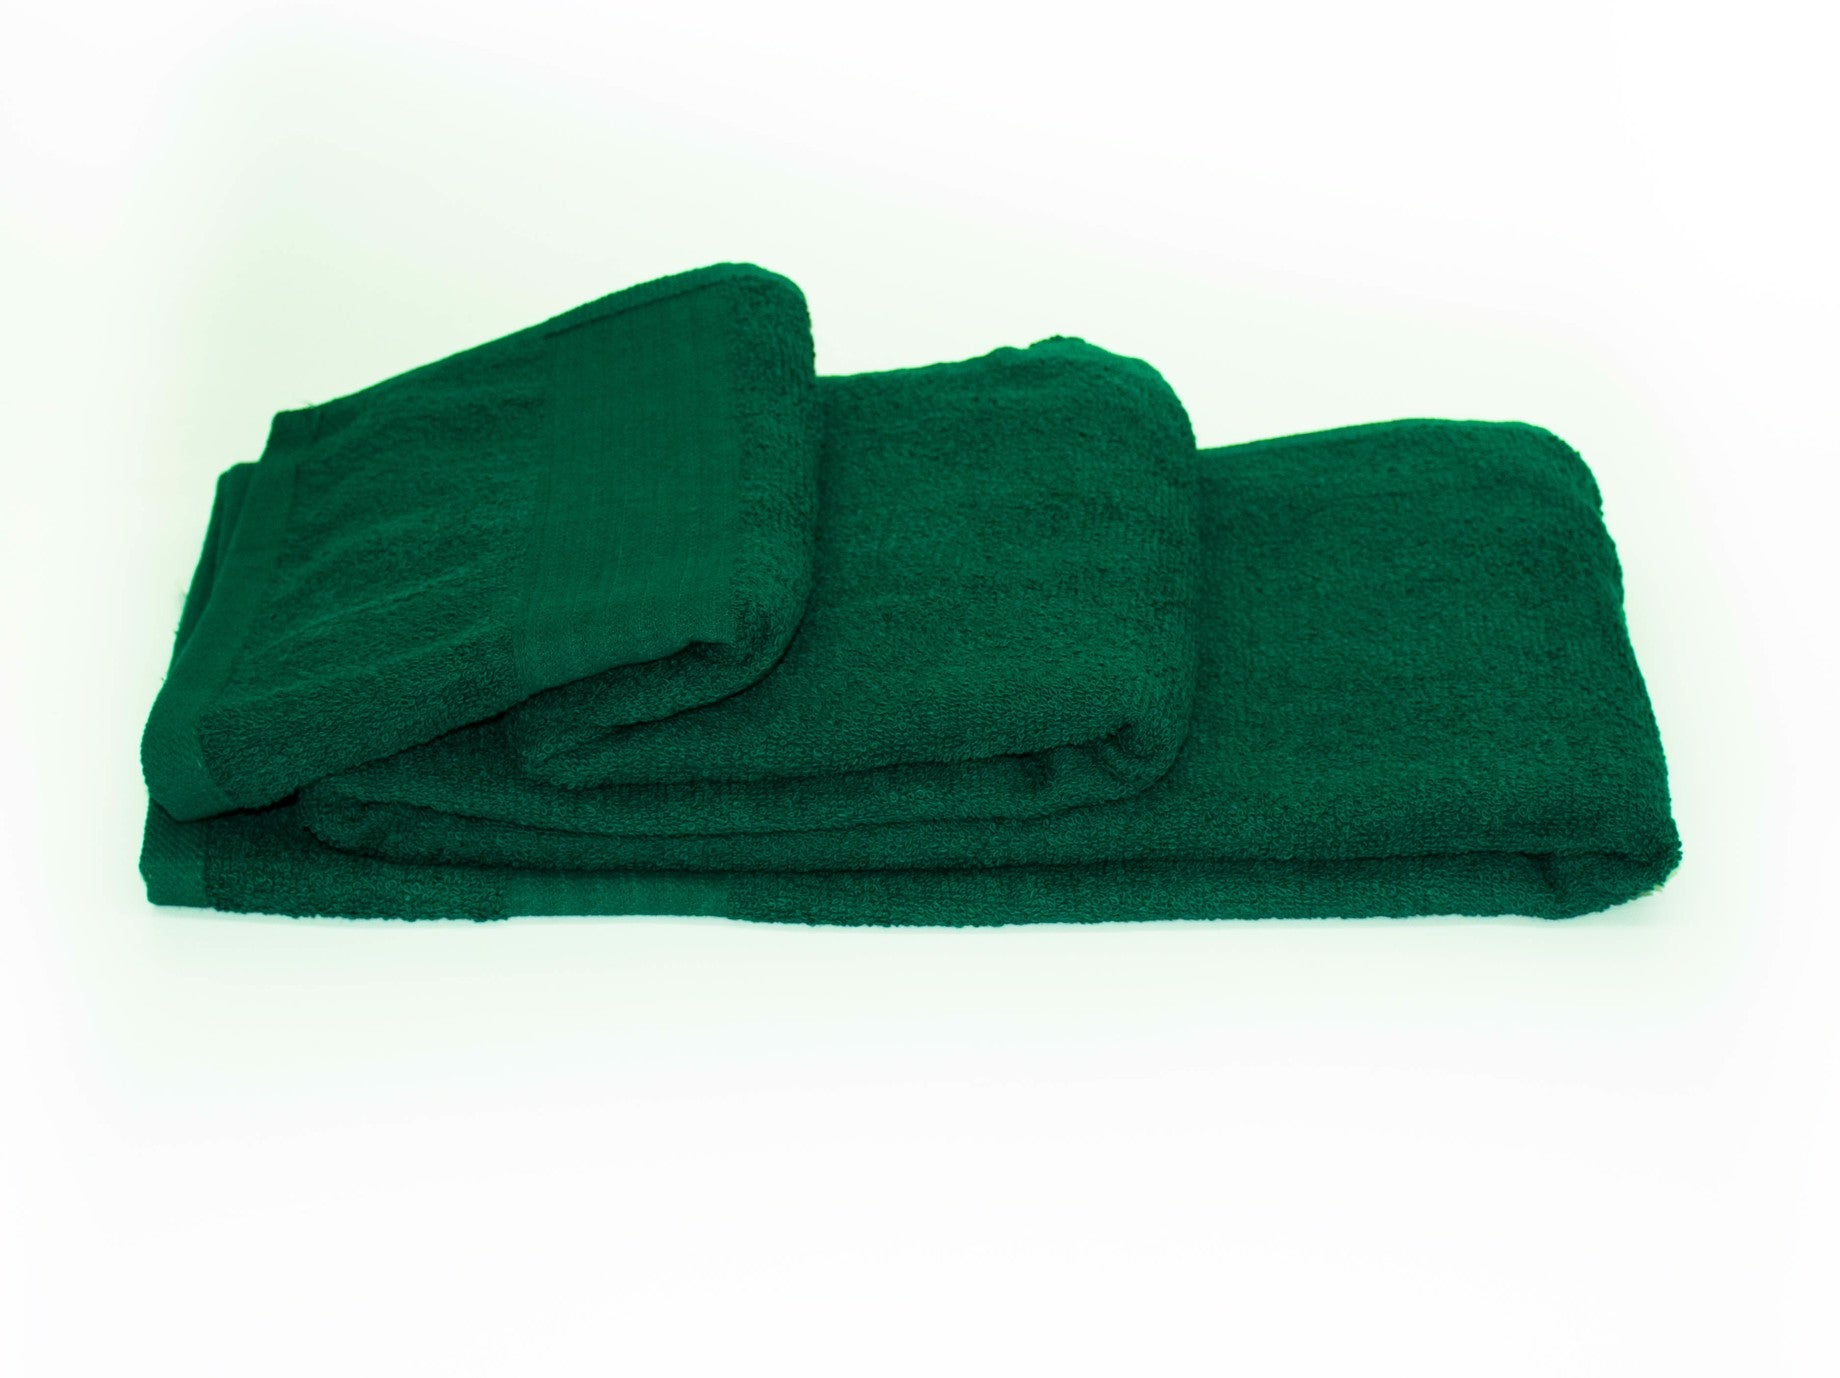 50x90cm HAND TOWEL HUNTER GREEN